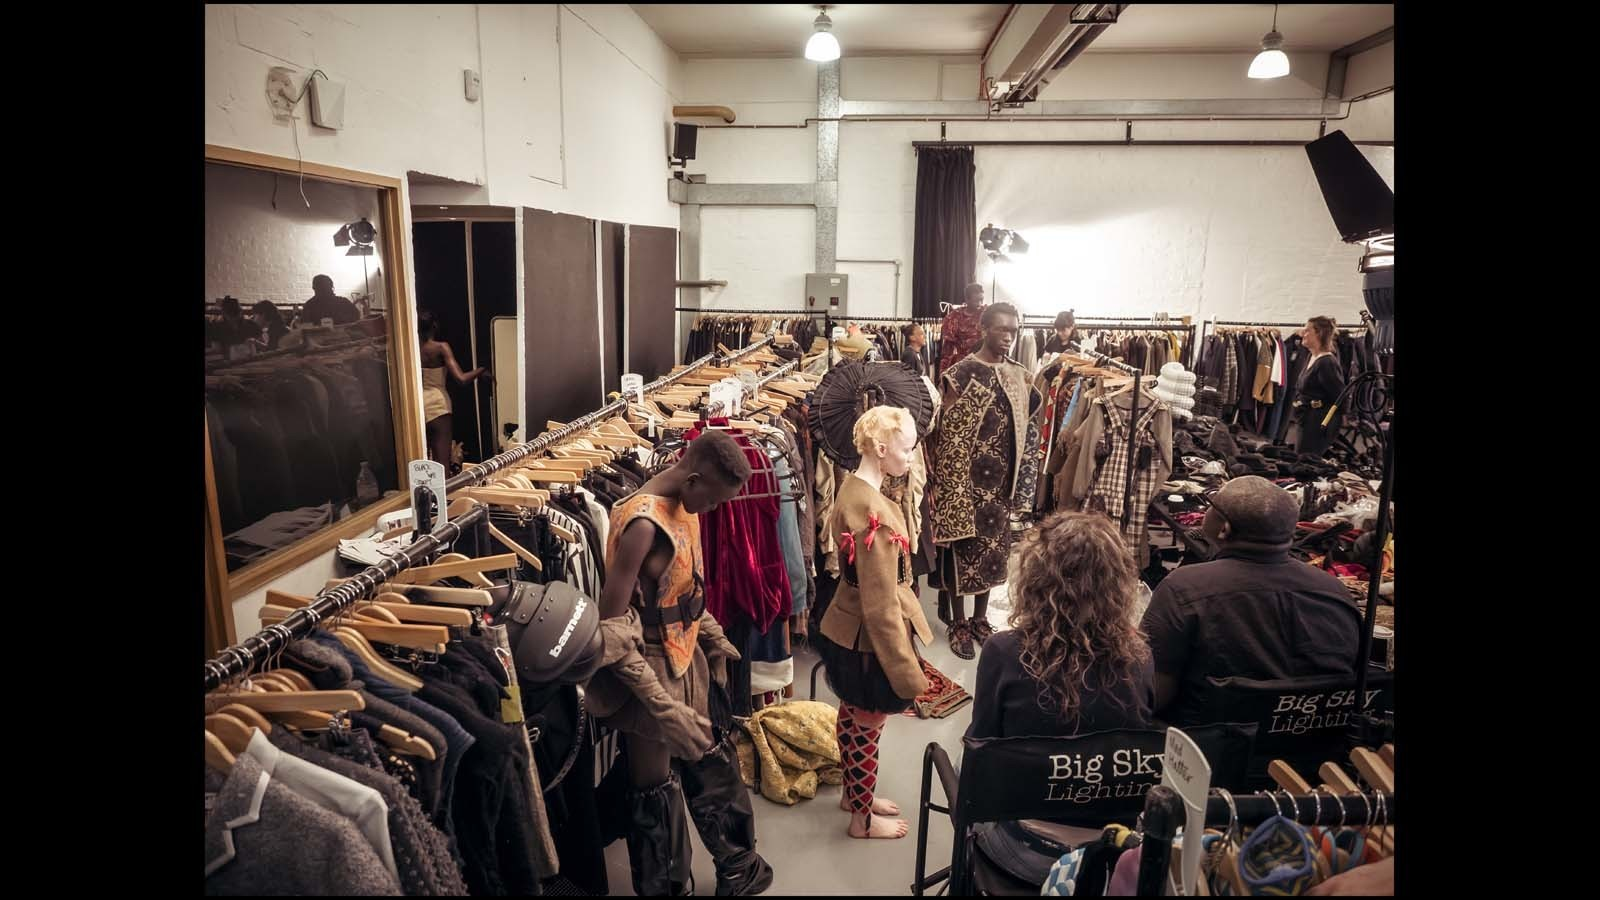 (Behind-the-scenes imagery from the 2018 Pirelli Calendar by Tim Walker / Alessandro Scotti)